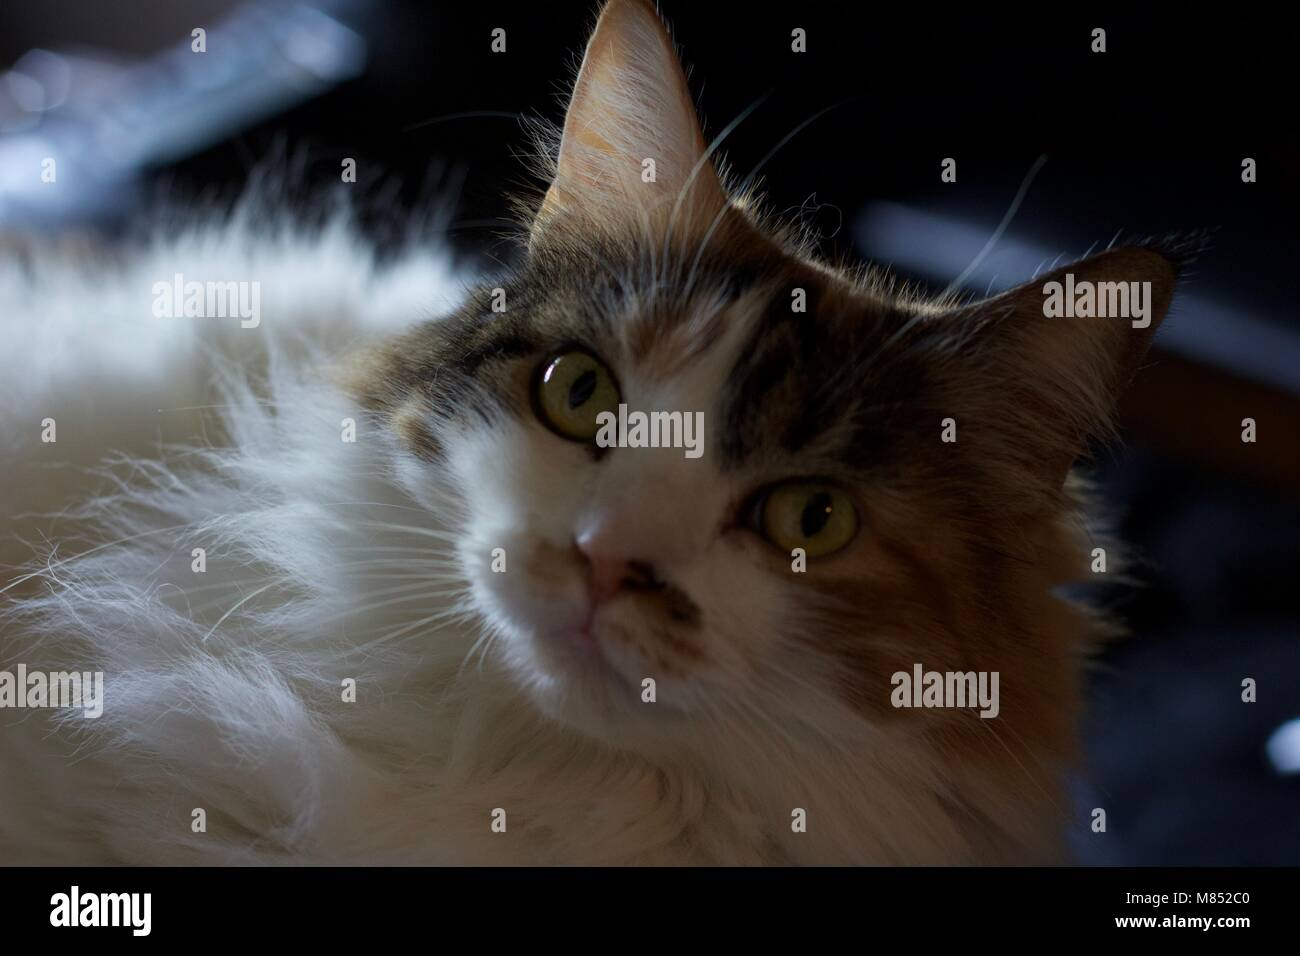 Surprised cat looking at something nearby - Stock Image